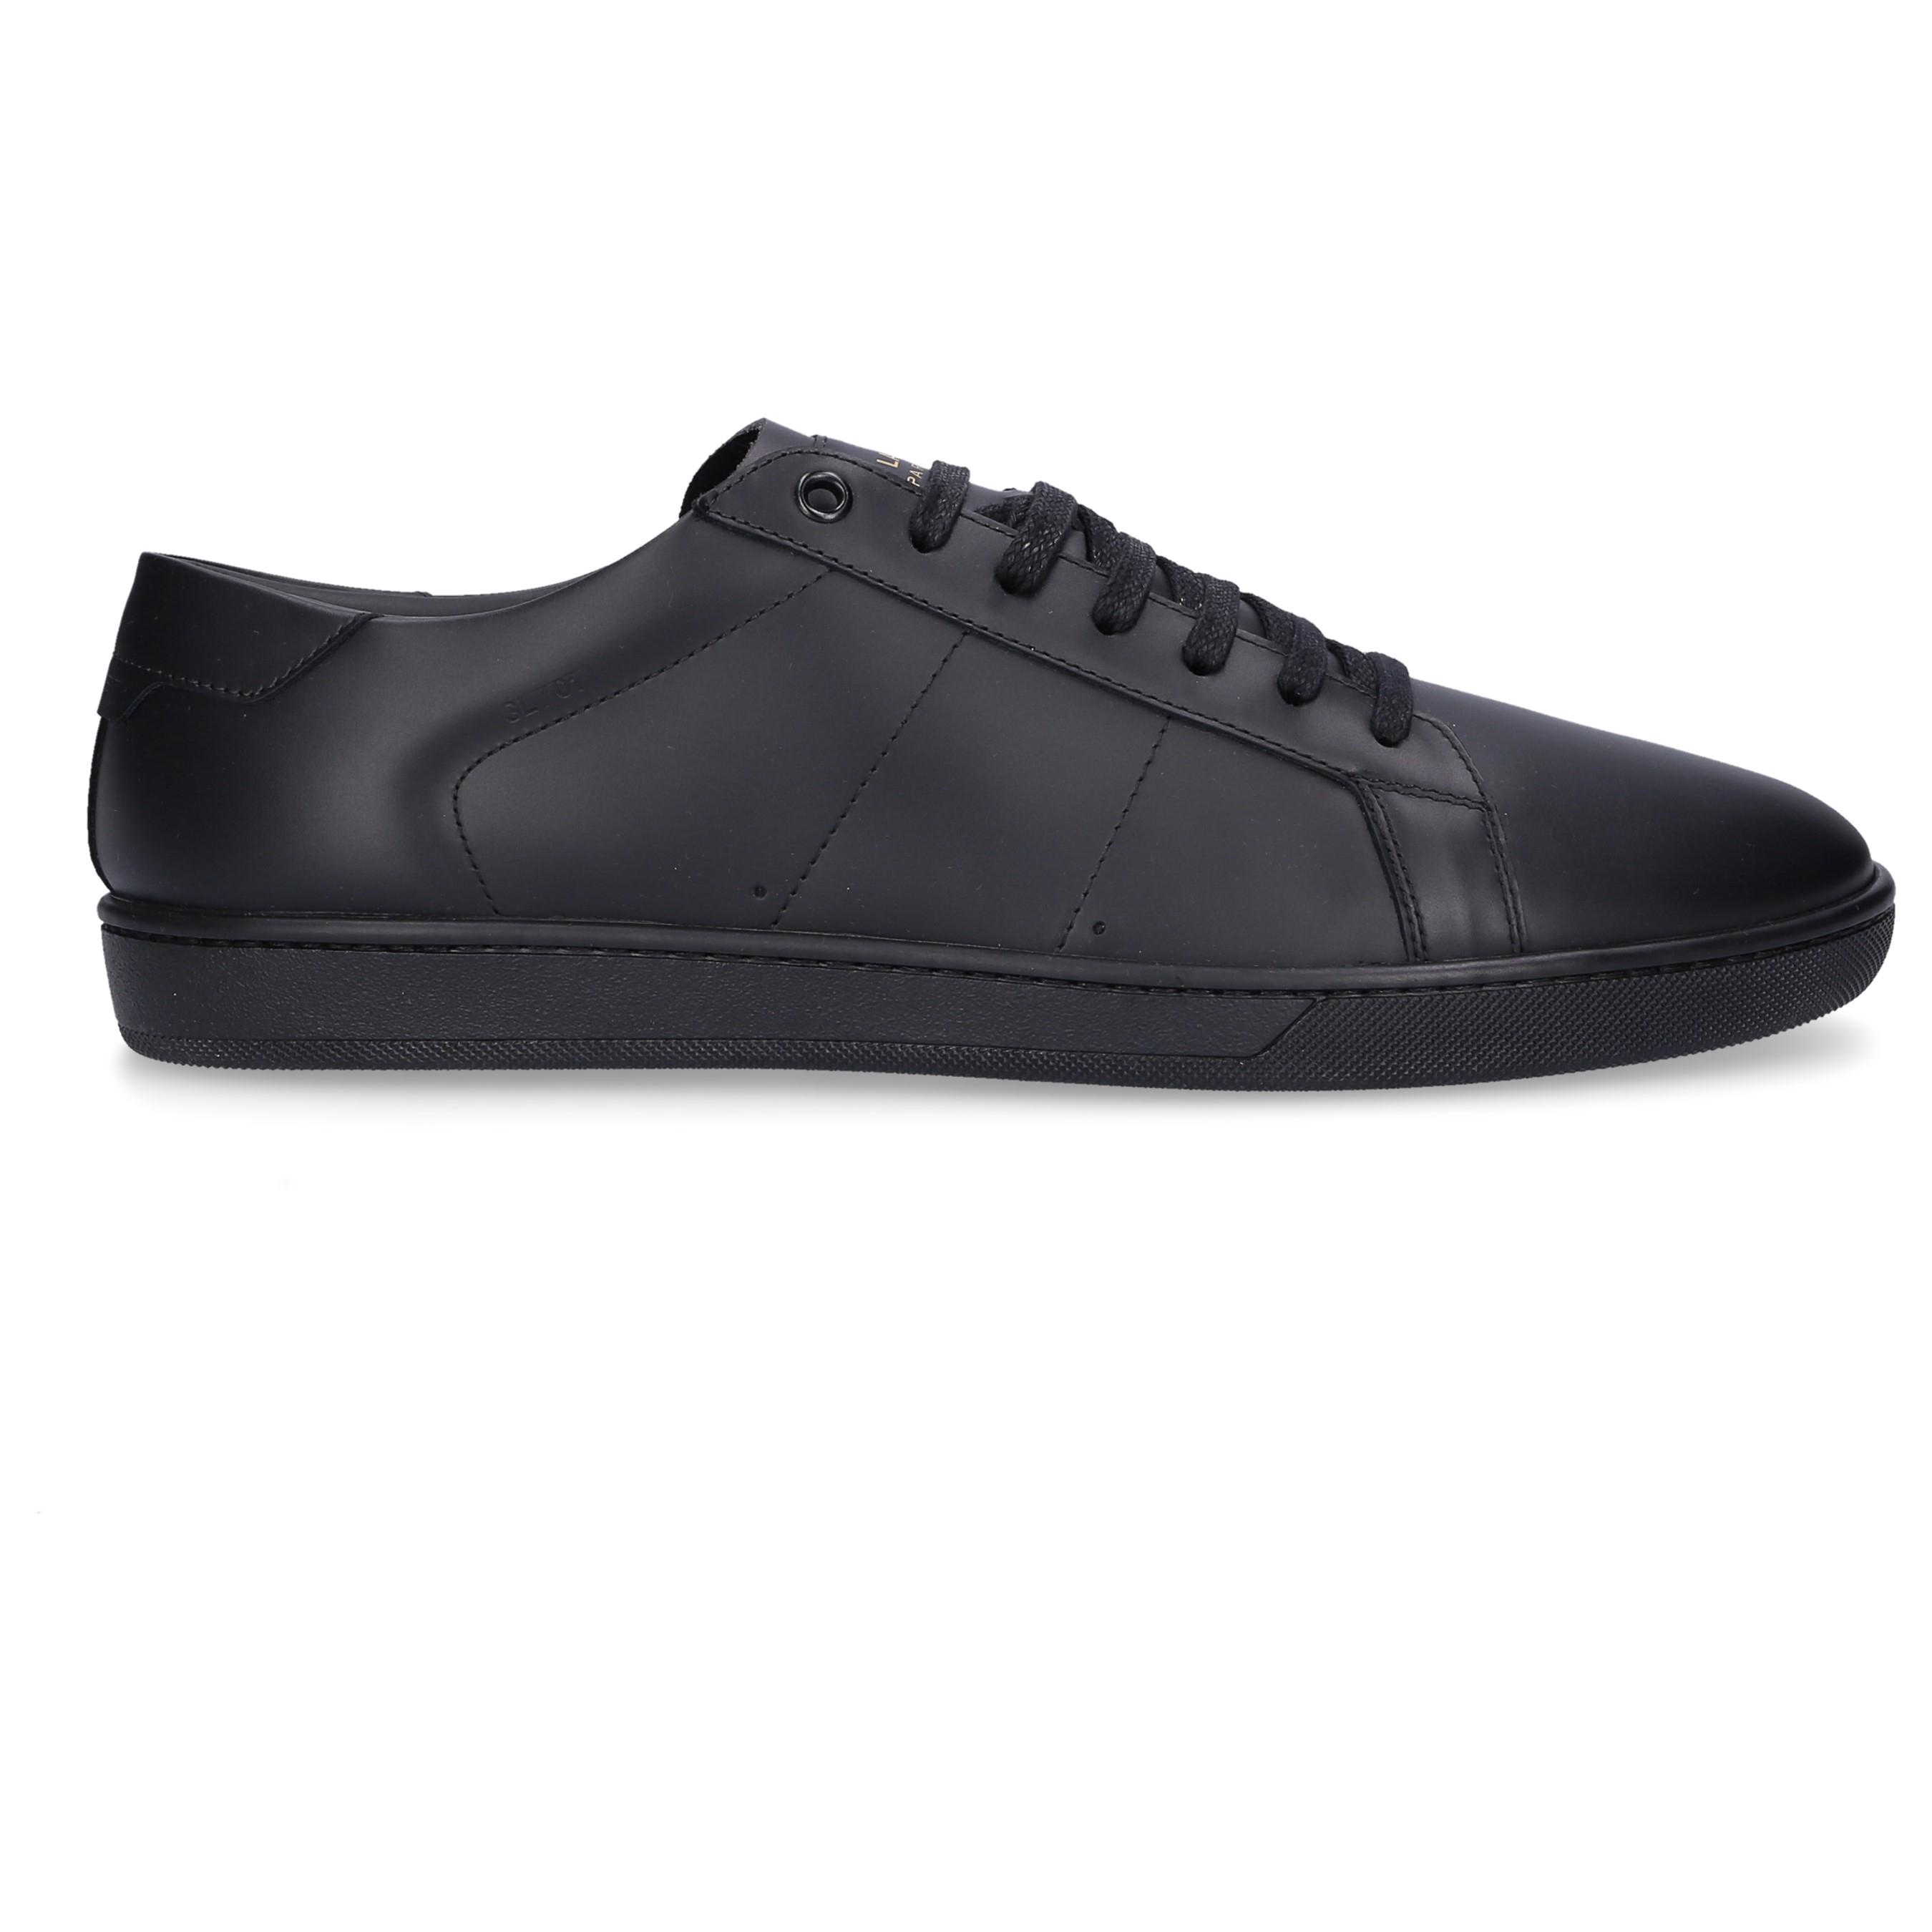 456493d237219 Lyst - Saint Laurent Signature Court Sl 01 Sneaker In Black Leather ...